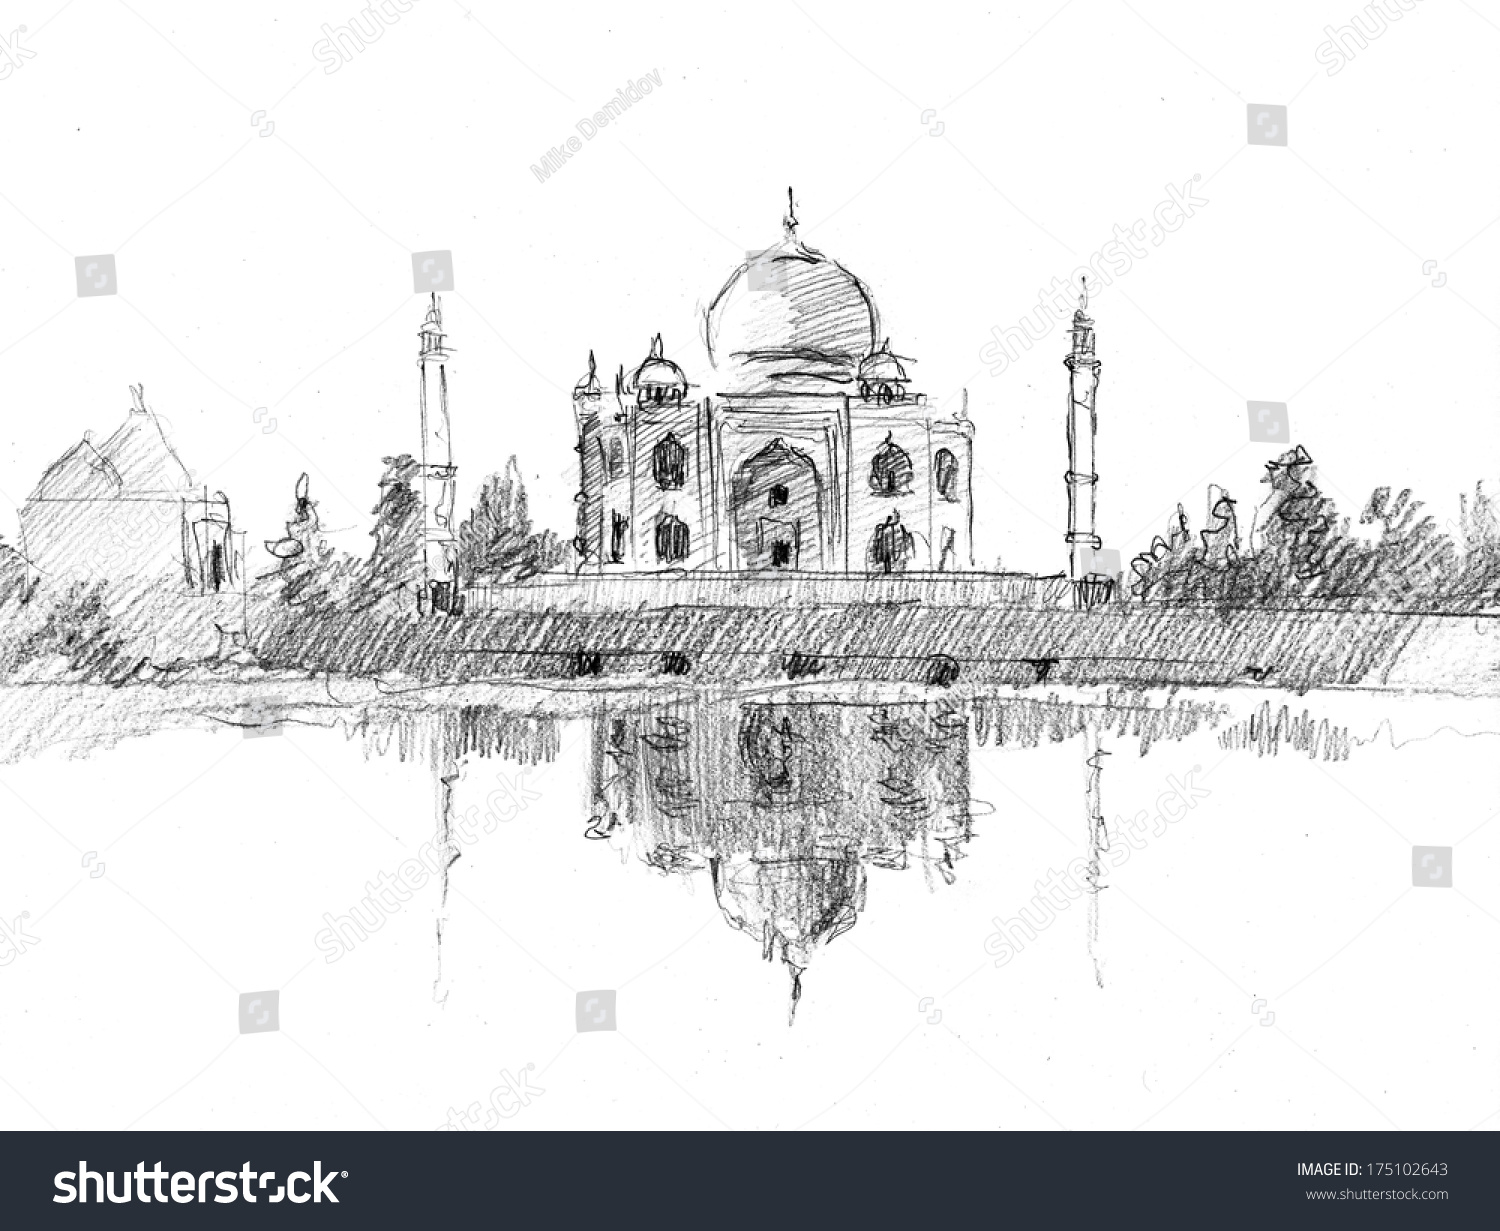 Pencil sketch of taj mahal drawn in pencil artistic style